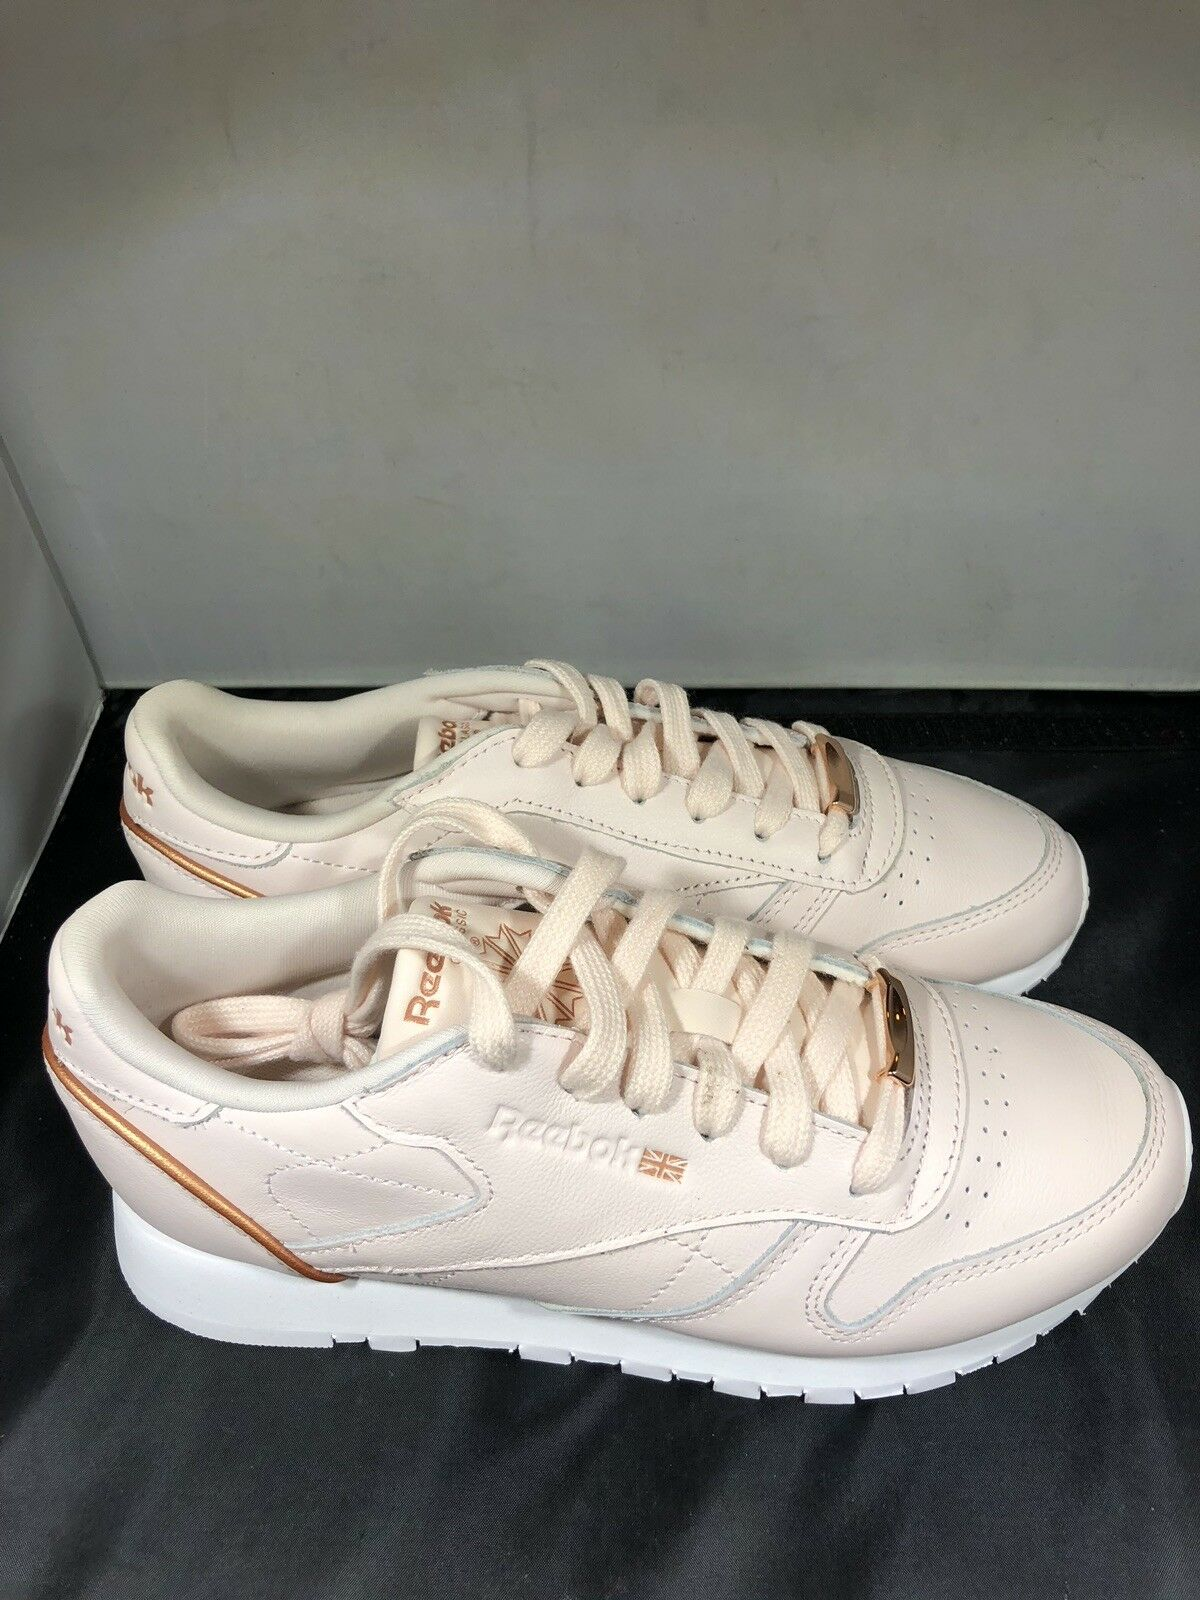 Reebok Womens Pale pink pink gold tennis shoes size 7.5   BS9880 ( G51)